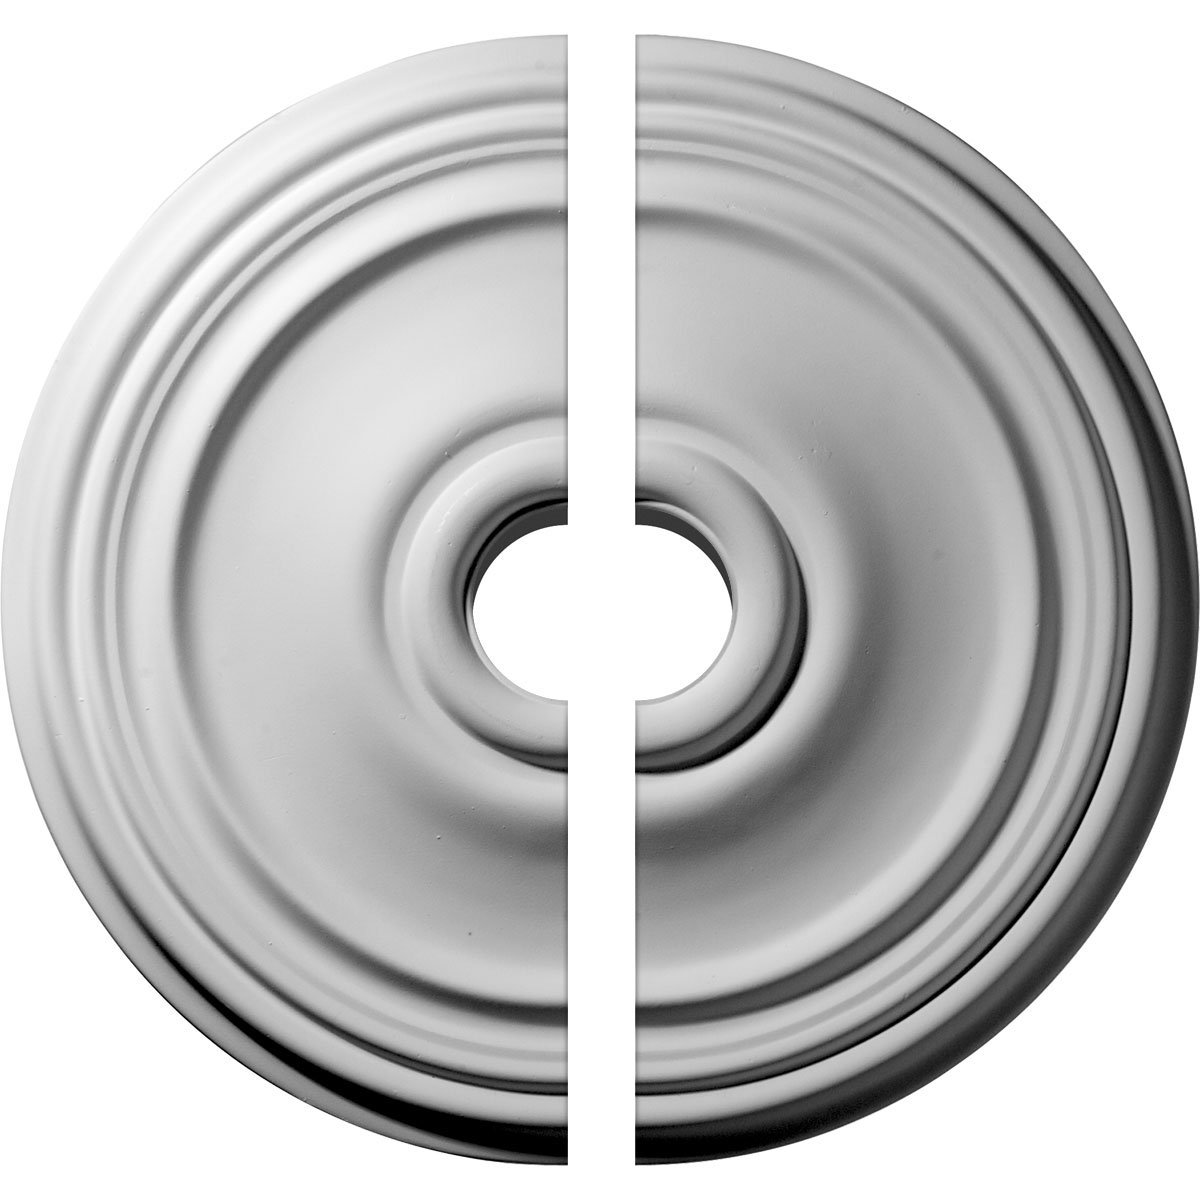 Ekena Millwork CM21RE2-03500 21''OD x 3 1/2''ID x 1 1/4''P Reece Ceiling Medallion, Two Piece (Fits Canopies up to 6 3/4''), Factory Primed by Ekena Millwork